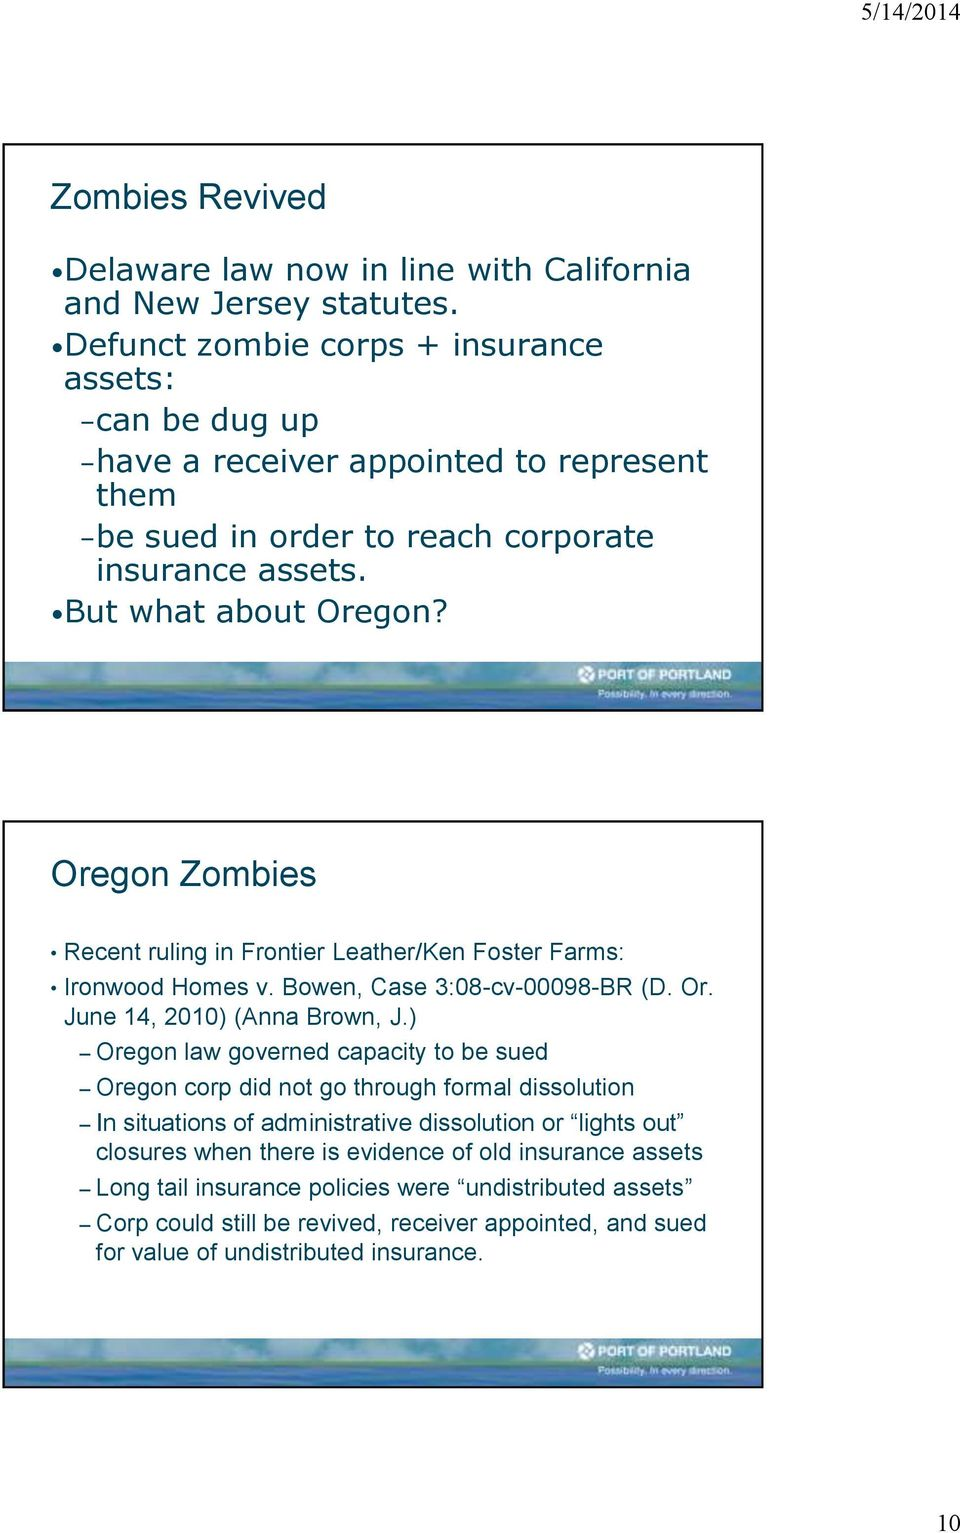 Oregon Zombies Recent ruling in Frontier Leather/Ken Foster Farms: Ironwood Homes v. Bowen, Case 3:08-cv-00098-BR (D. Or. June 14, 2010) (Anna Brown, J.